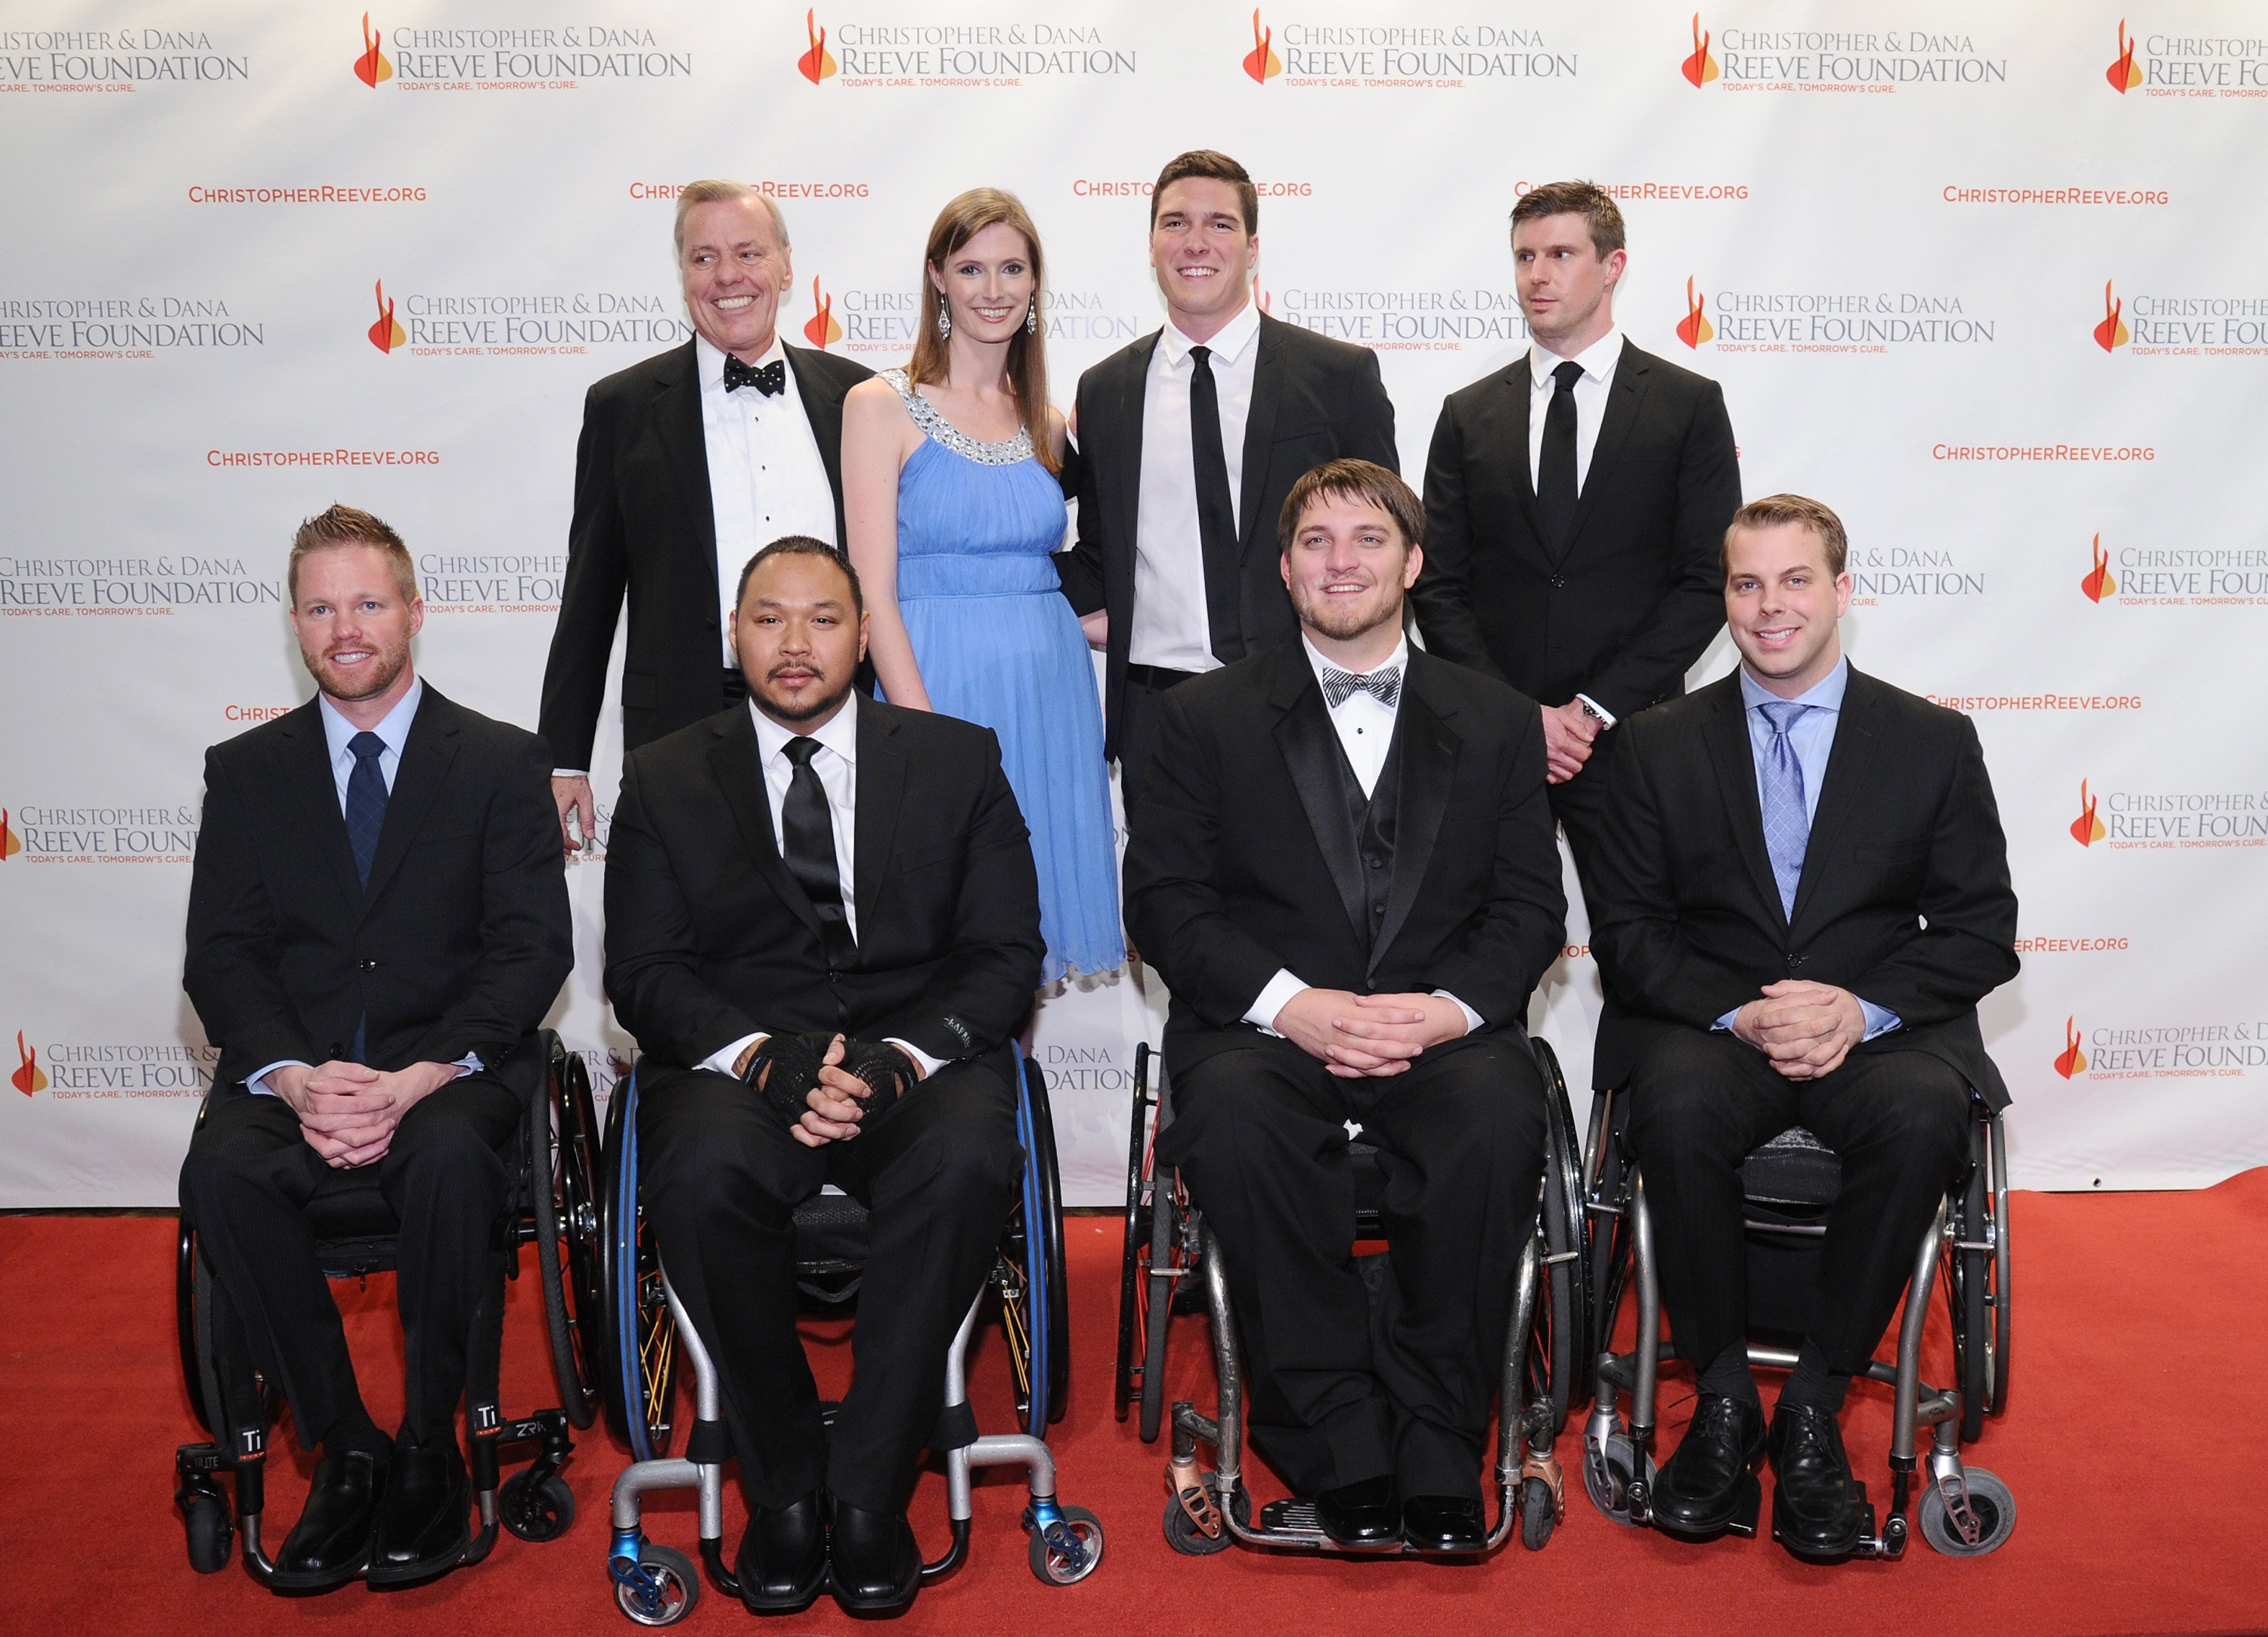 Attendees at Chris Reeve Foundation event in New York, 2014  | Photo: Getty Images